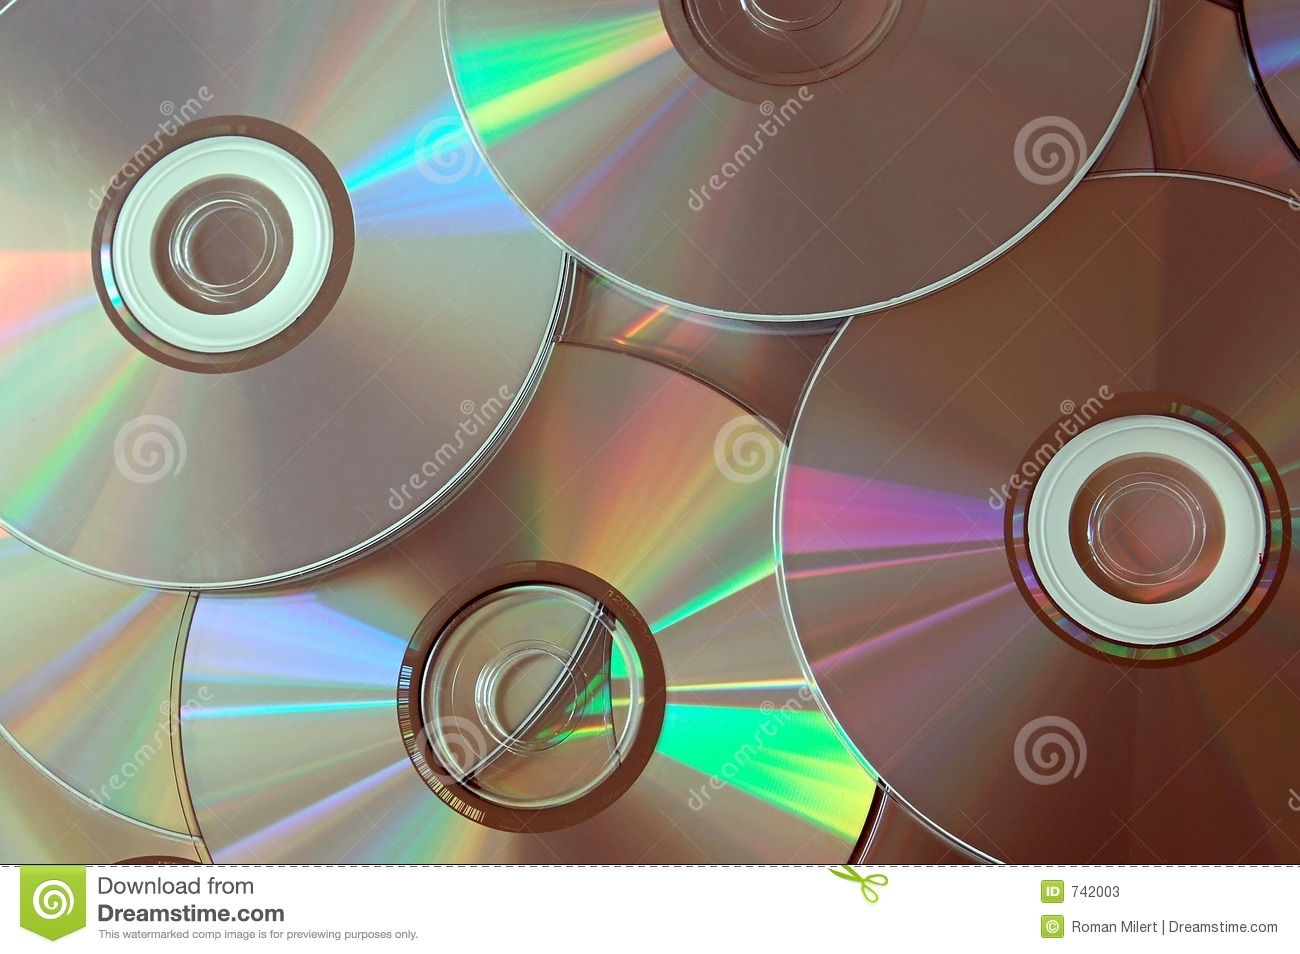 Disques compacts-ROM